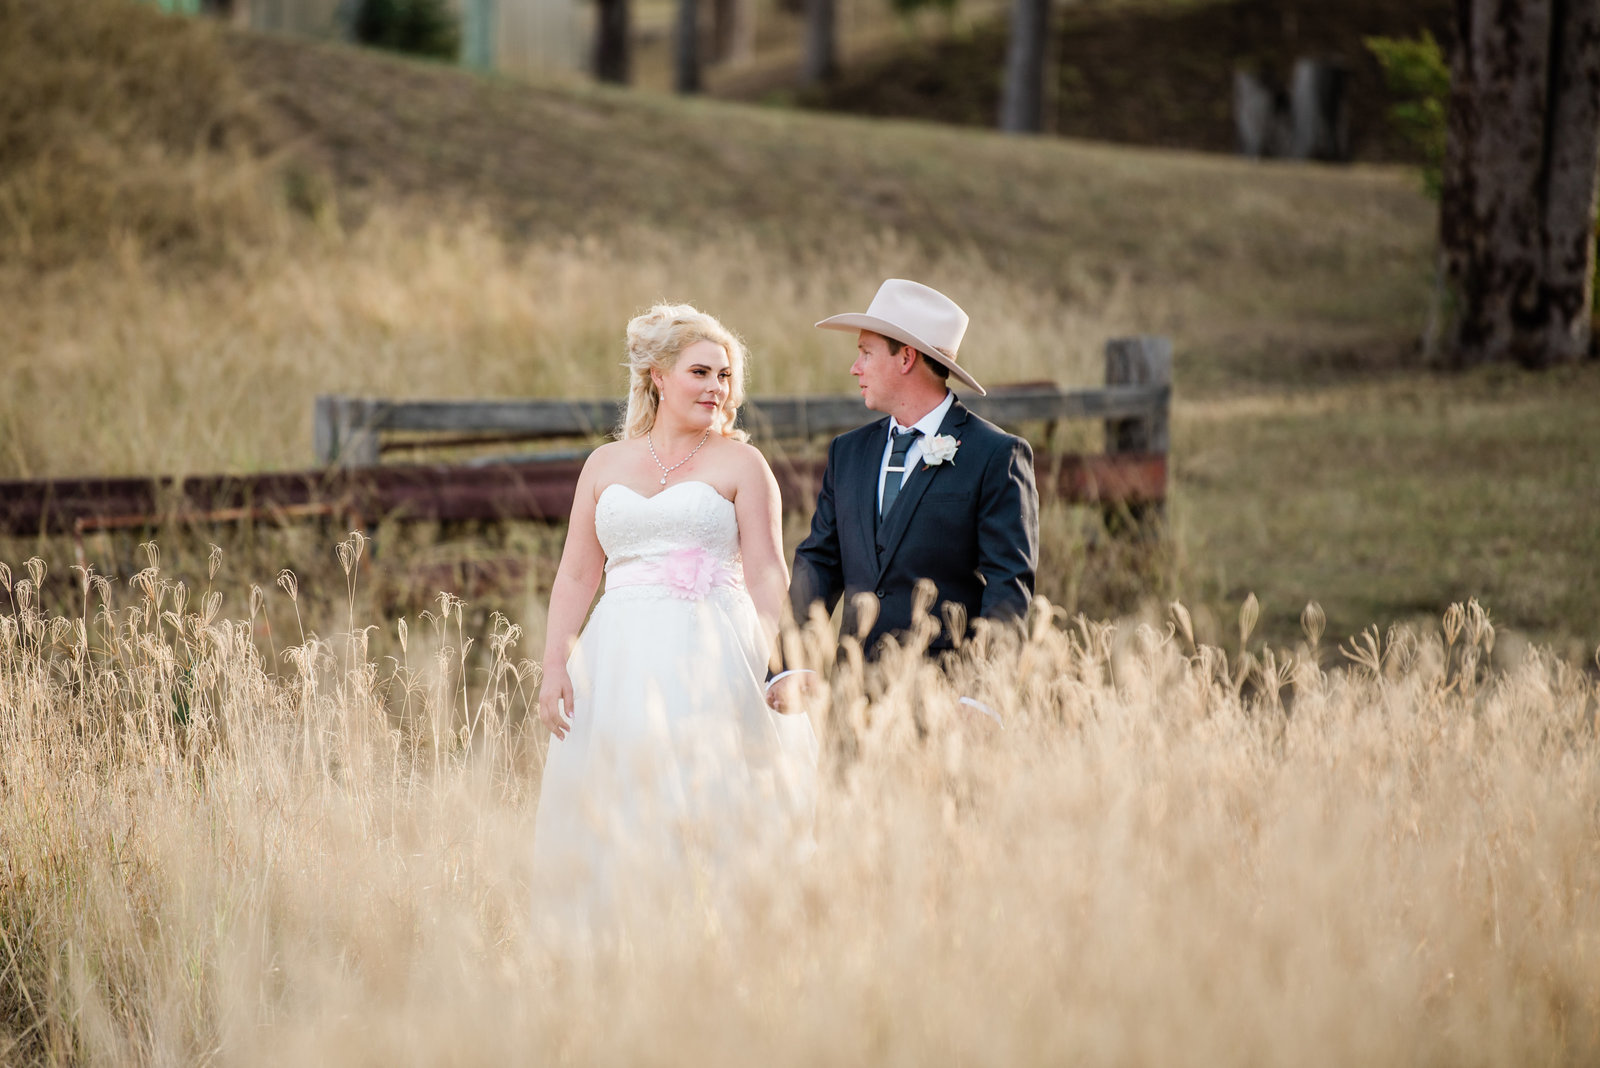 Minden-Retreat-Country-wedding-bride-and-groom-walk-in-grassy-field (1 of 1)